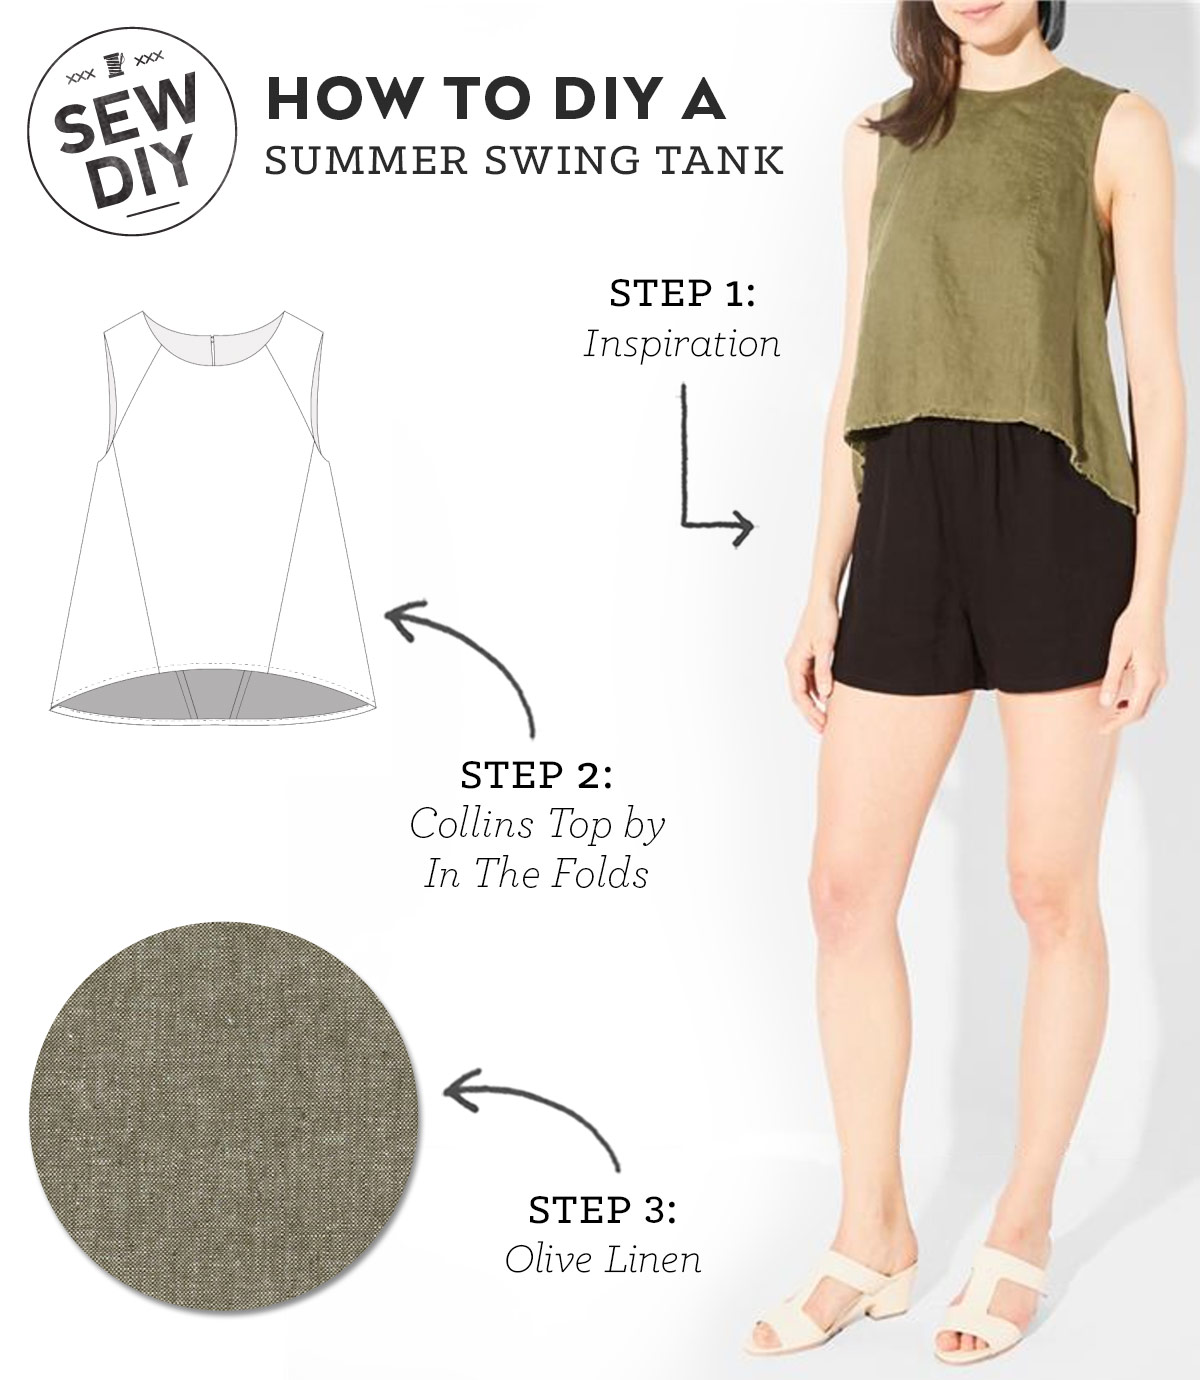 How to DIY a Summer Swing Tank | Sew DIY